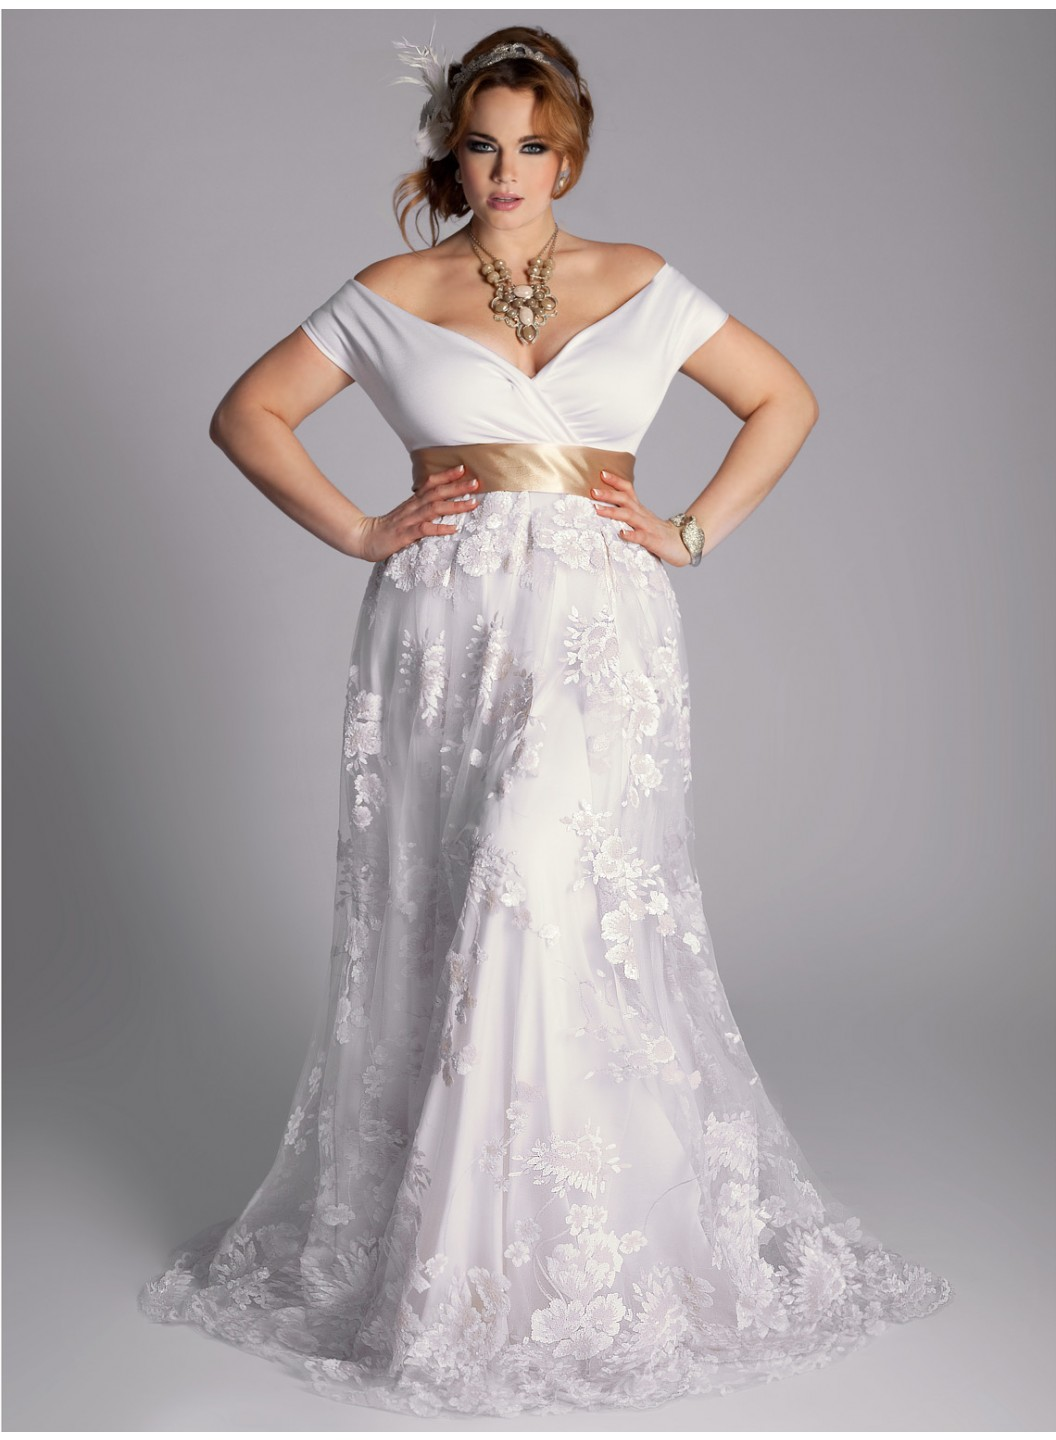 25 stunning plus-size wedding dresses for every style of nuptial affair